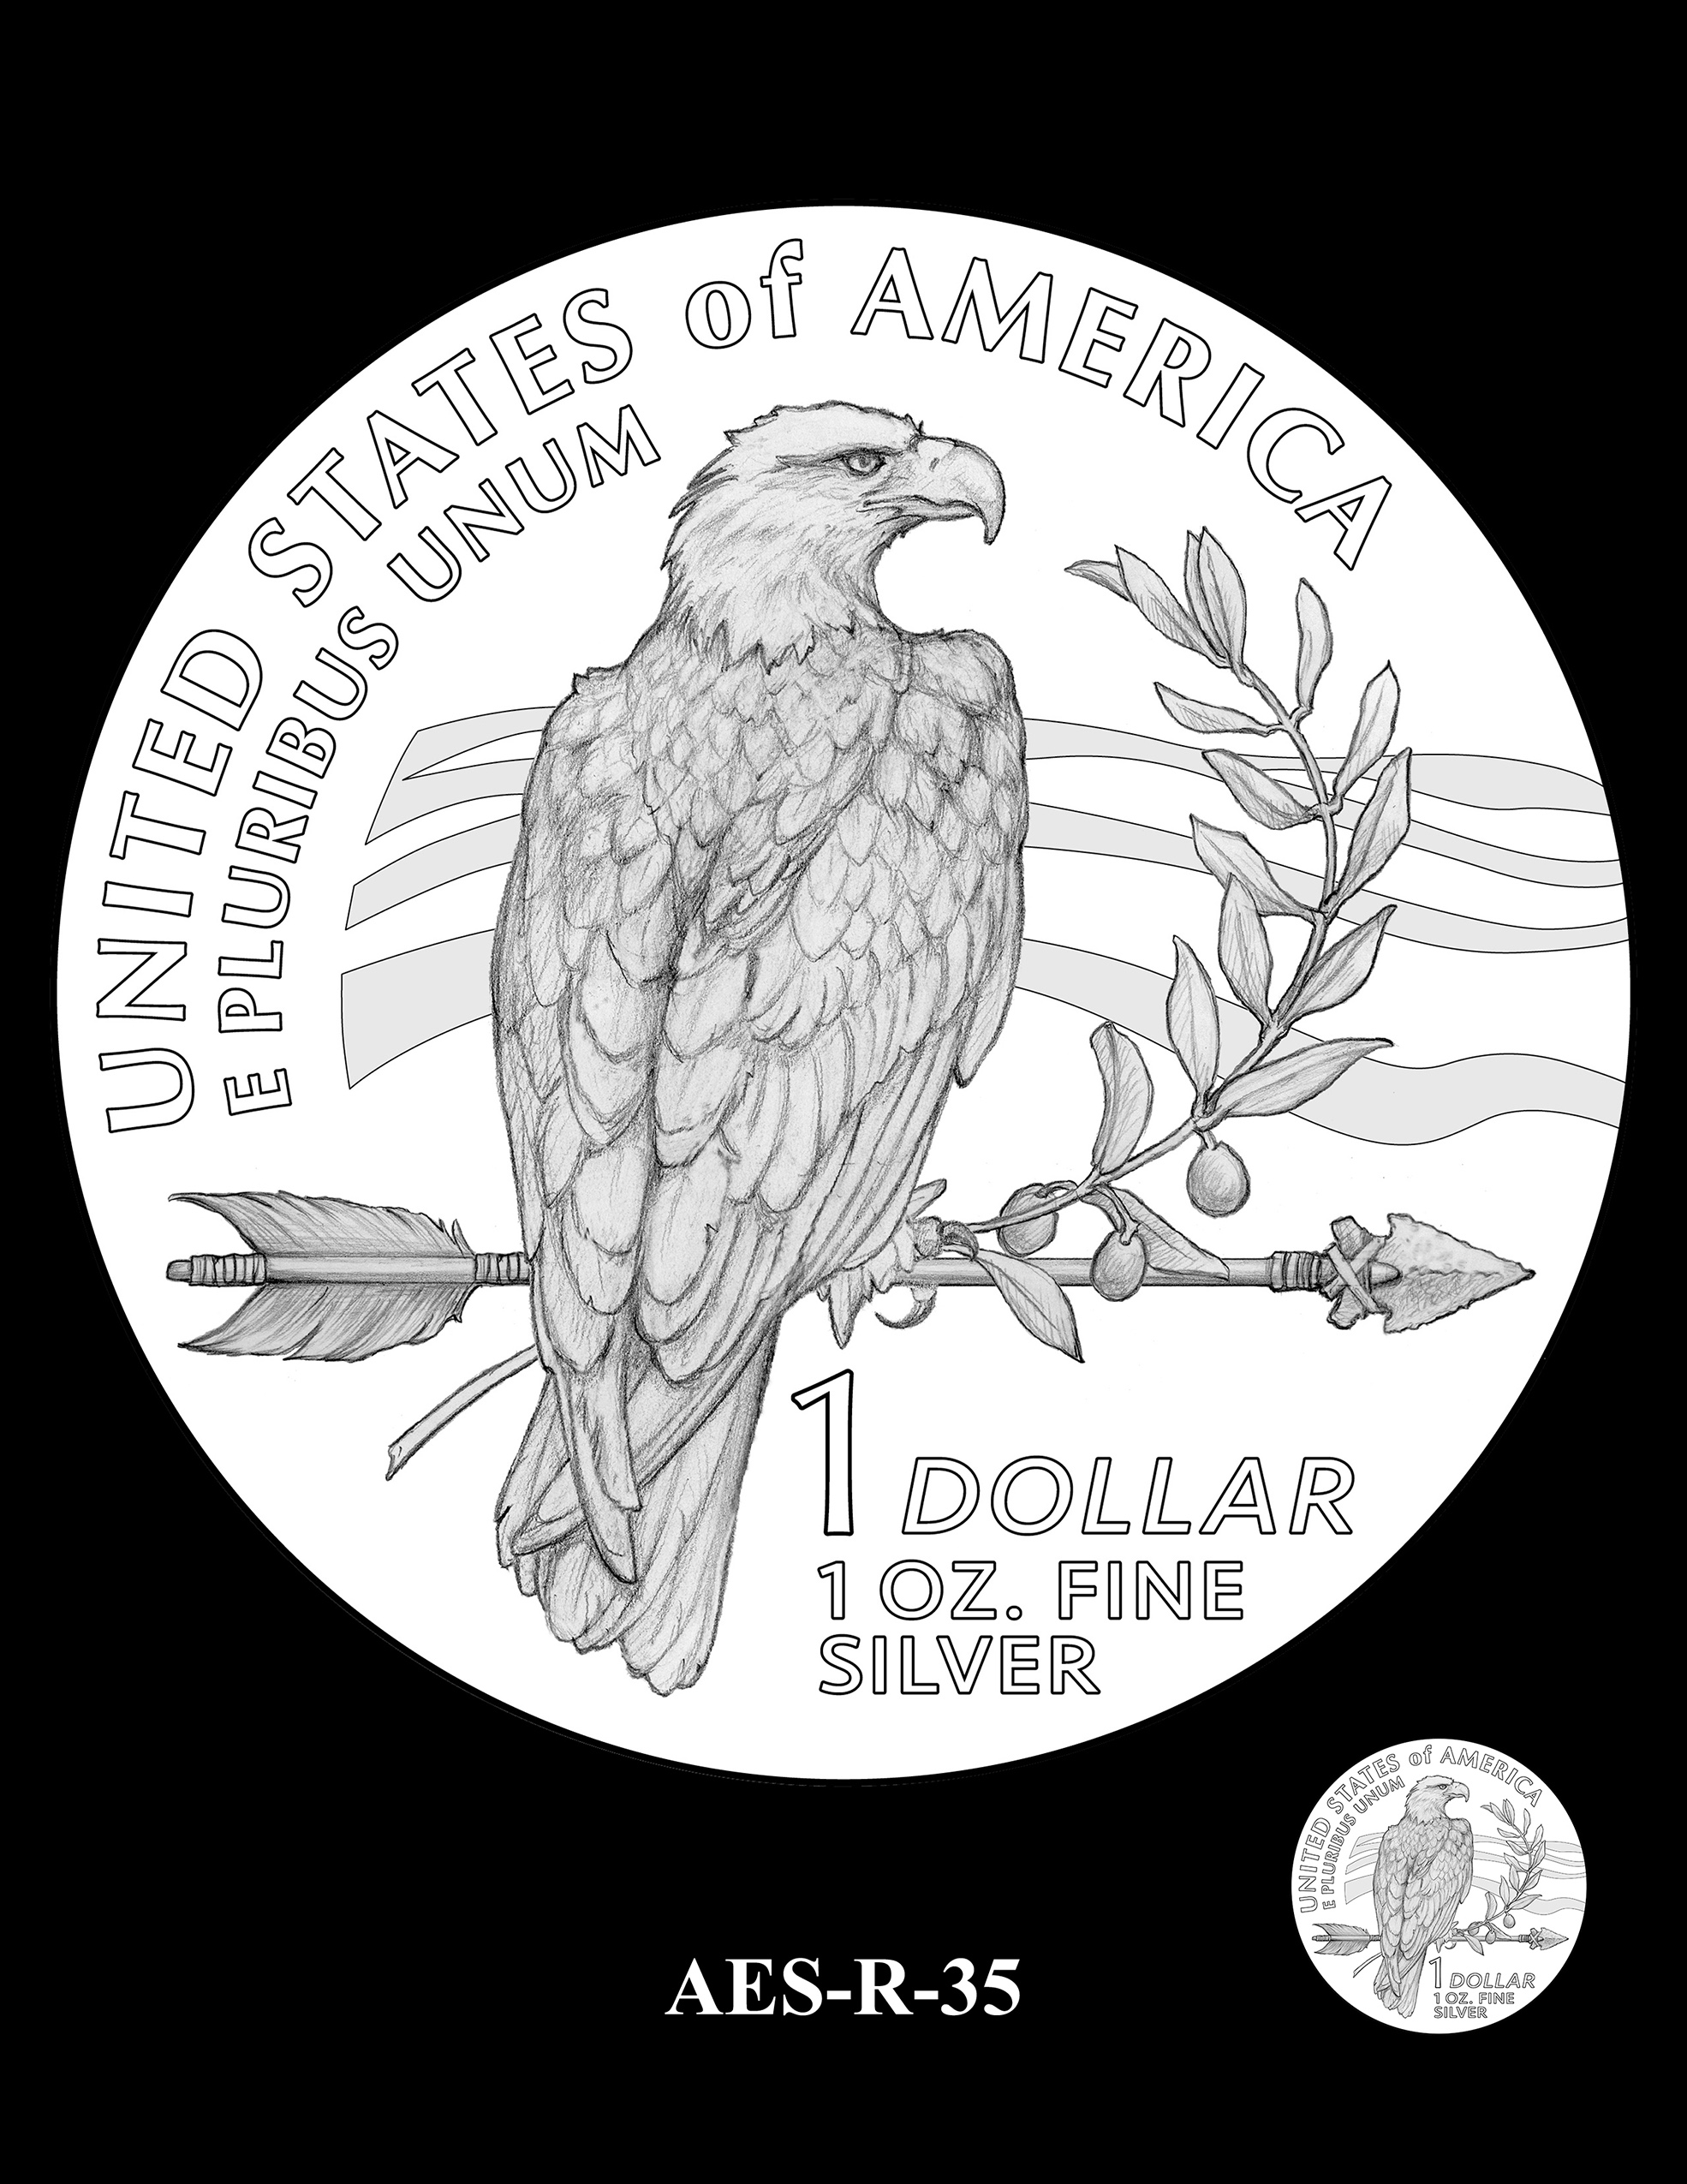 AES-R-35 -- American Eagle Proof and Bullion Silver Coin - Reverse